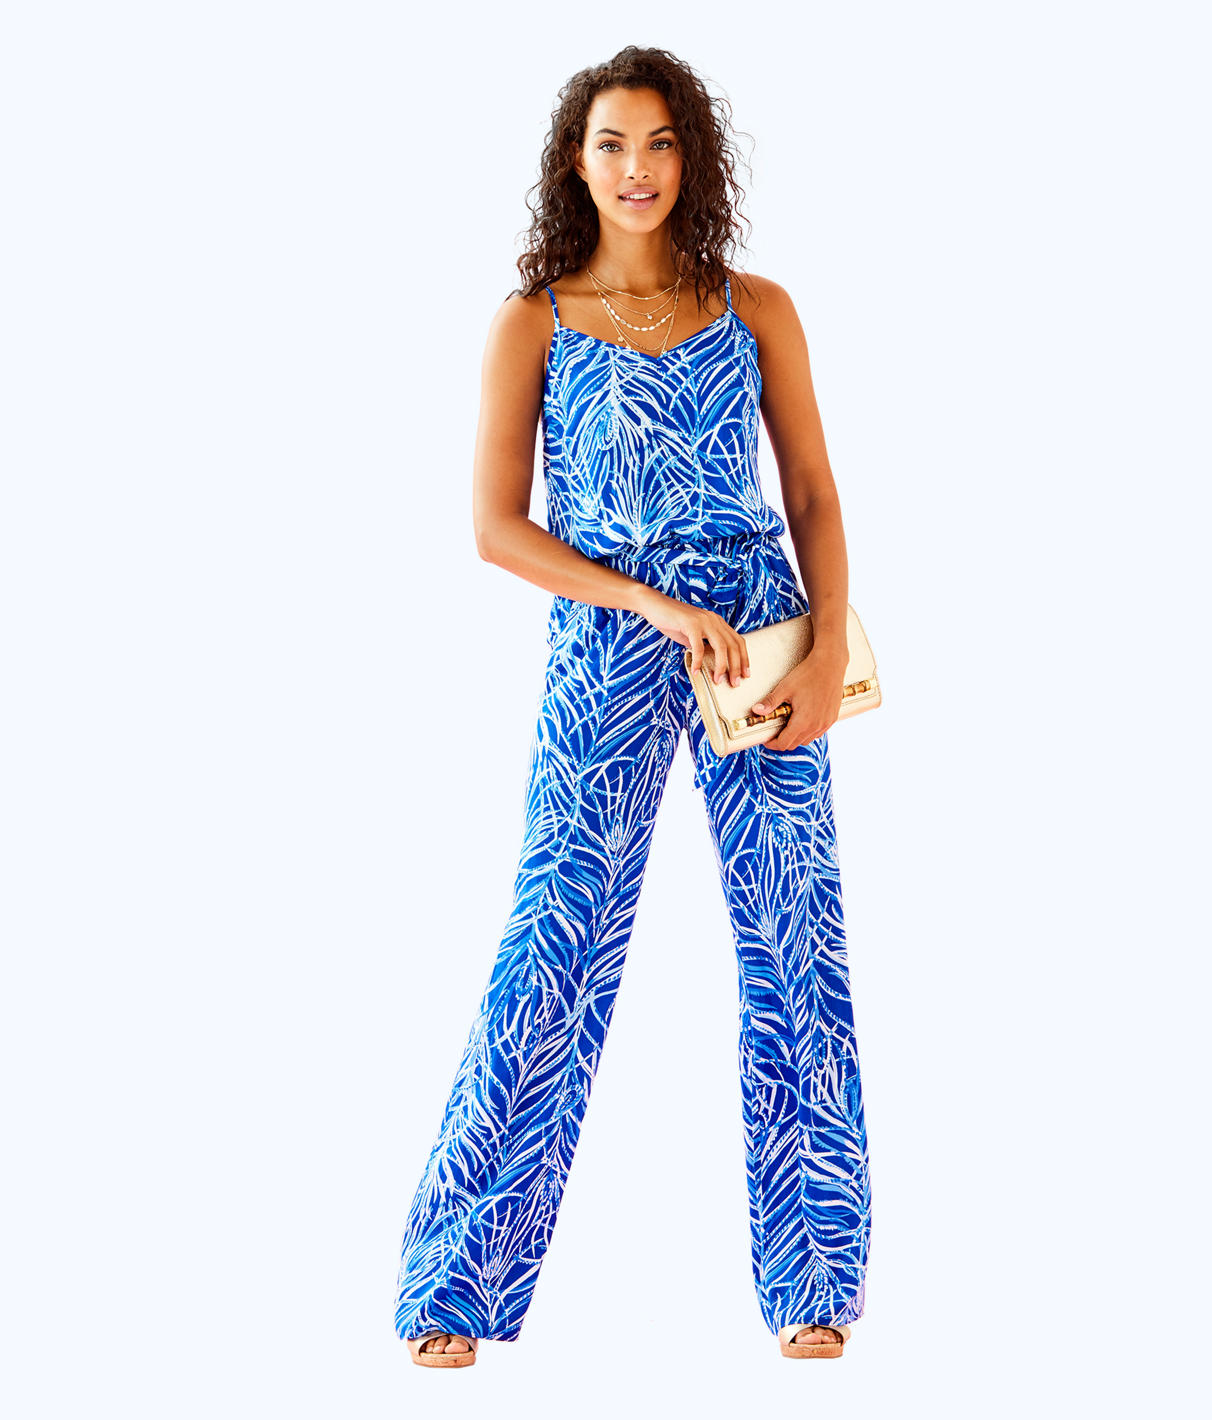 Lilly Pulitzer Lilly Pulitzer Womens Dusk Jumpsuit